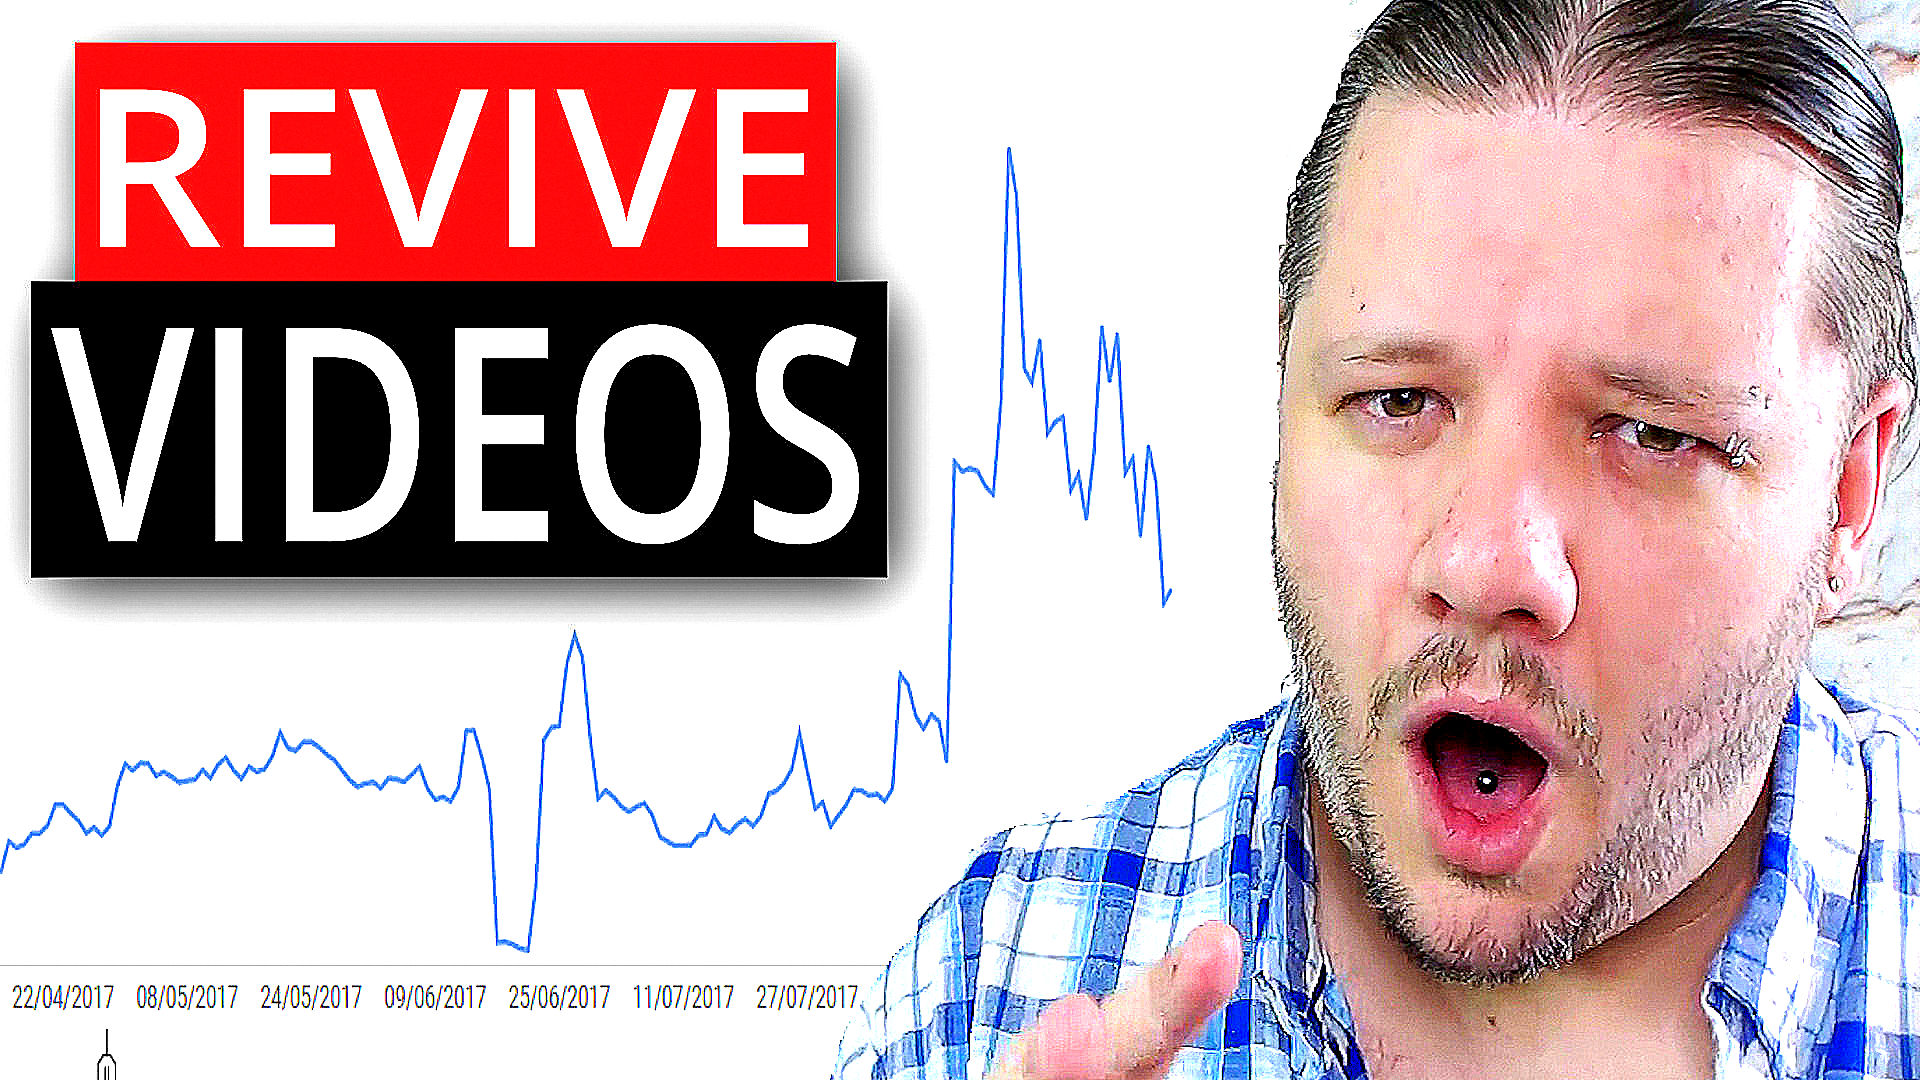 alan spicer,alanspicer,youtube tips,youtube tricks,asyt,revive old youtube videos,how to revive old youtube videos,revive old videos,How To Revive Your Old YouTube Videos,revive your old youtube videos,revive videos,revive youtube videos,revive dead videos,dead videos,revive dead youtube videos,reviving old videos,reviving old youtube videos,how to revive dead videos,how to revive dead youtube videos,youtube,youtube videos,old videos,old youtube videos